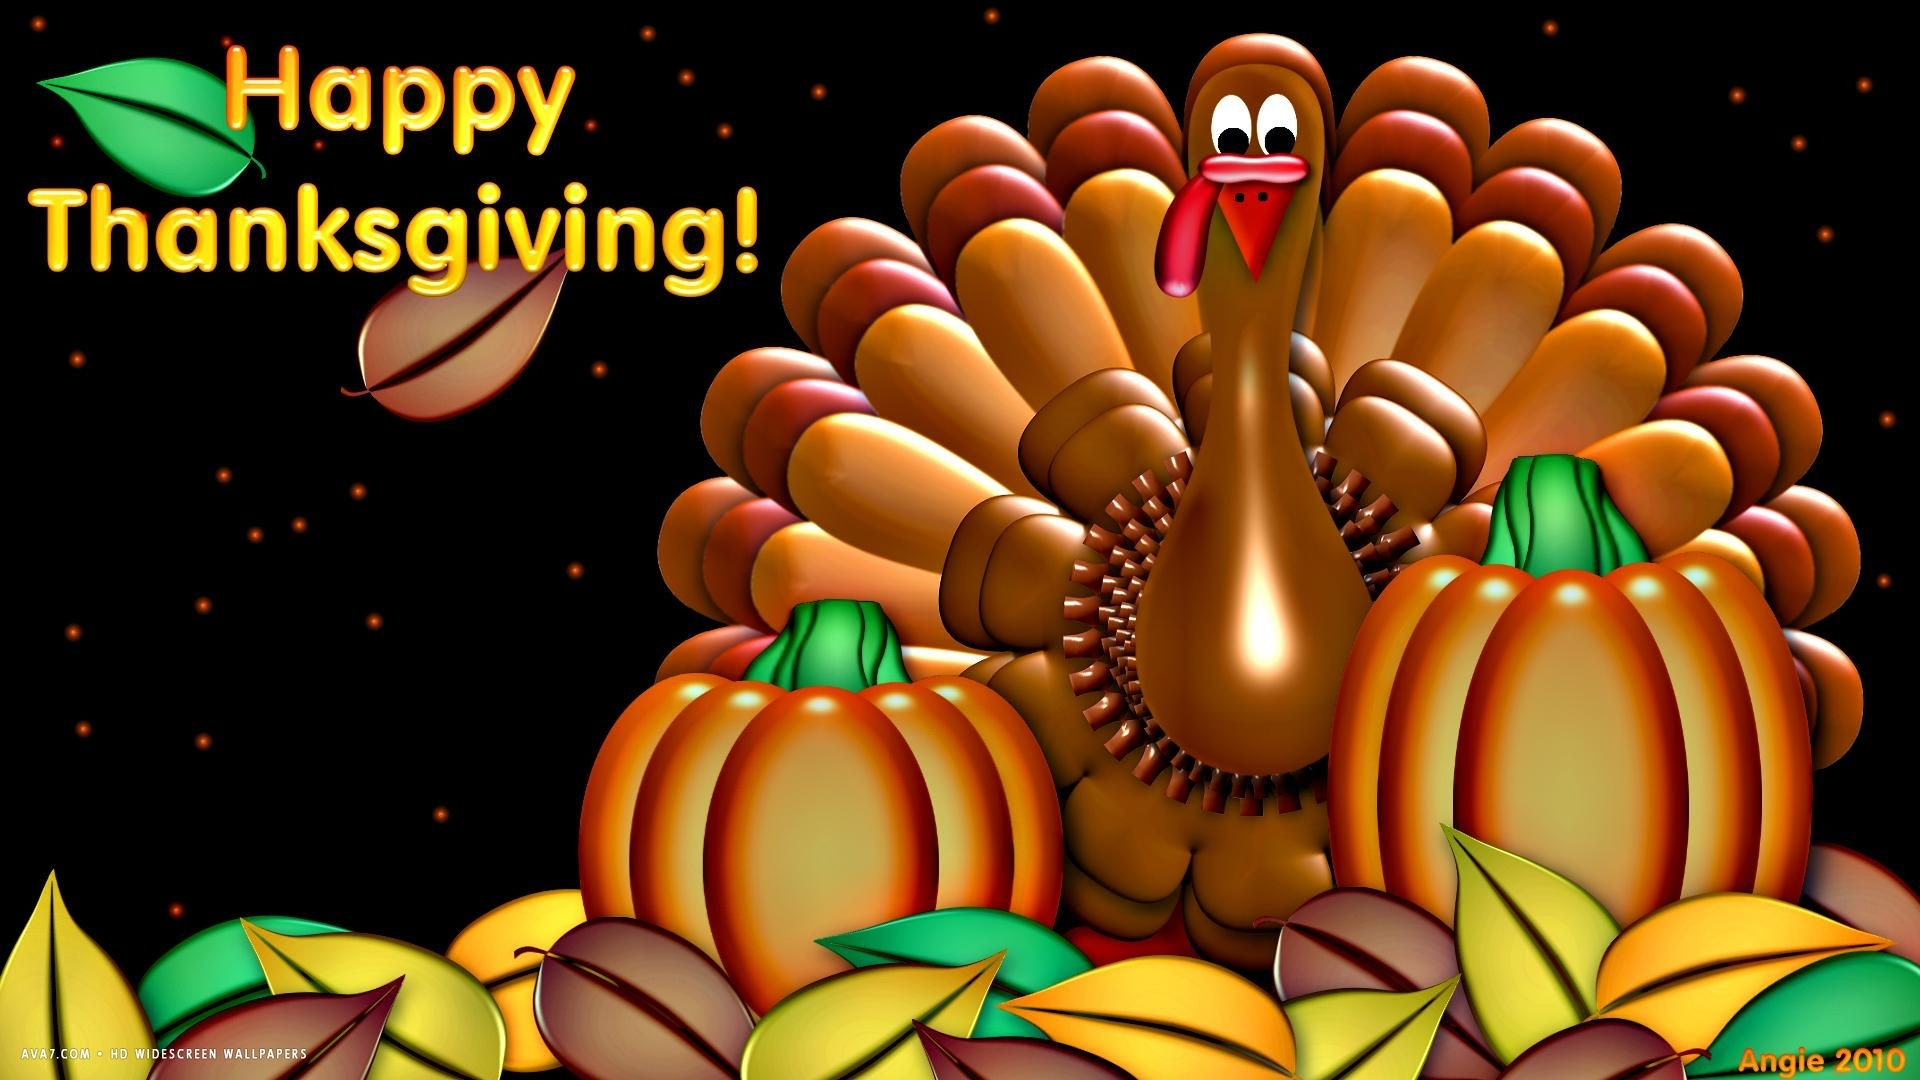 happy thanksgiving turkey pumpkin artistic holiday hd widescreen